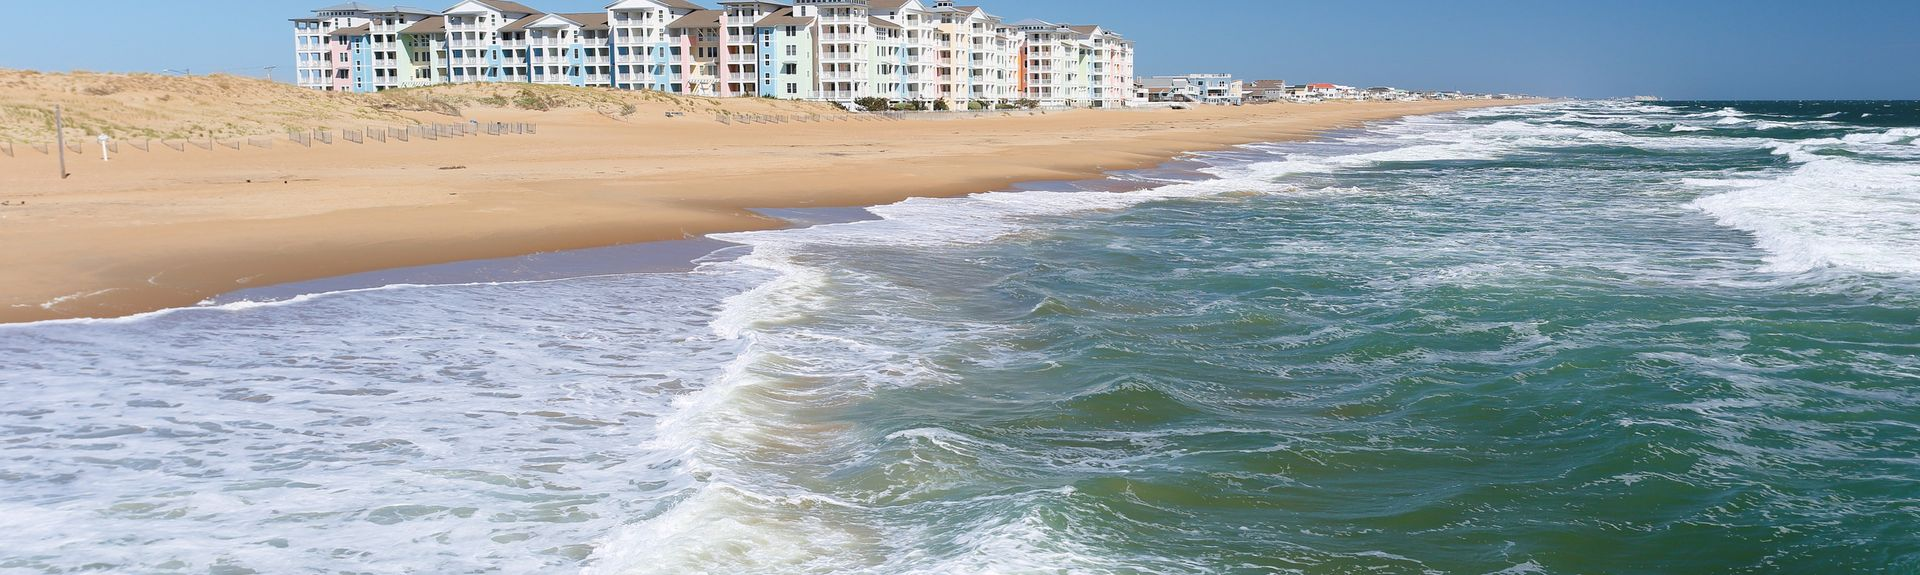 Sandbridge, Virginia Beach, Virginia, United States of America